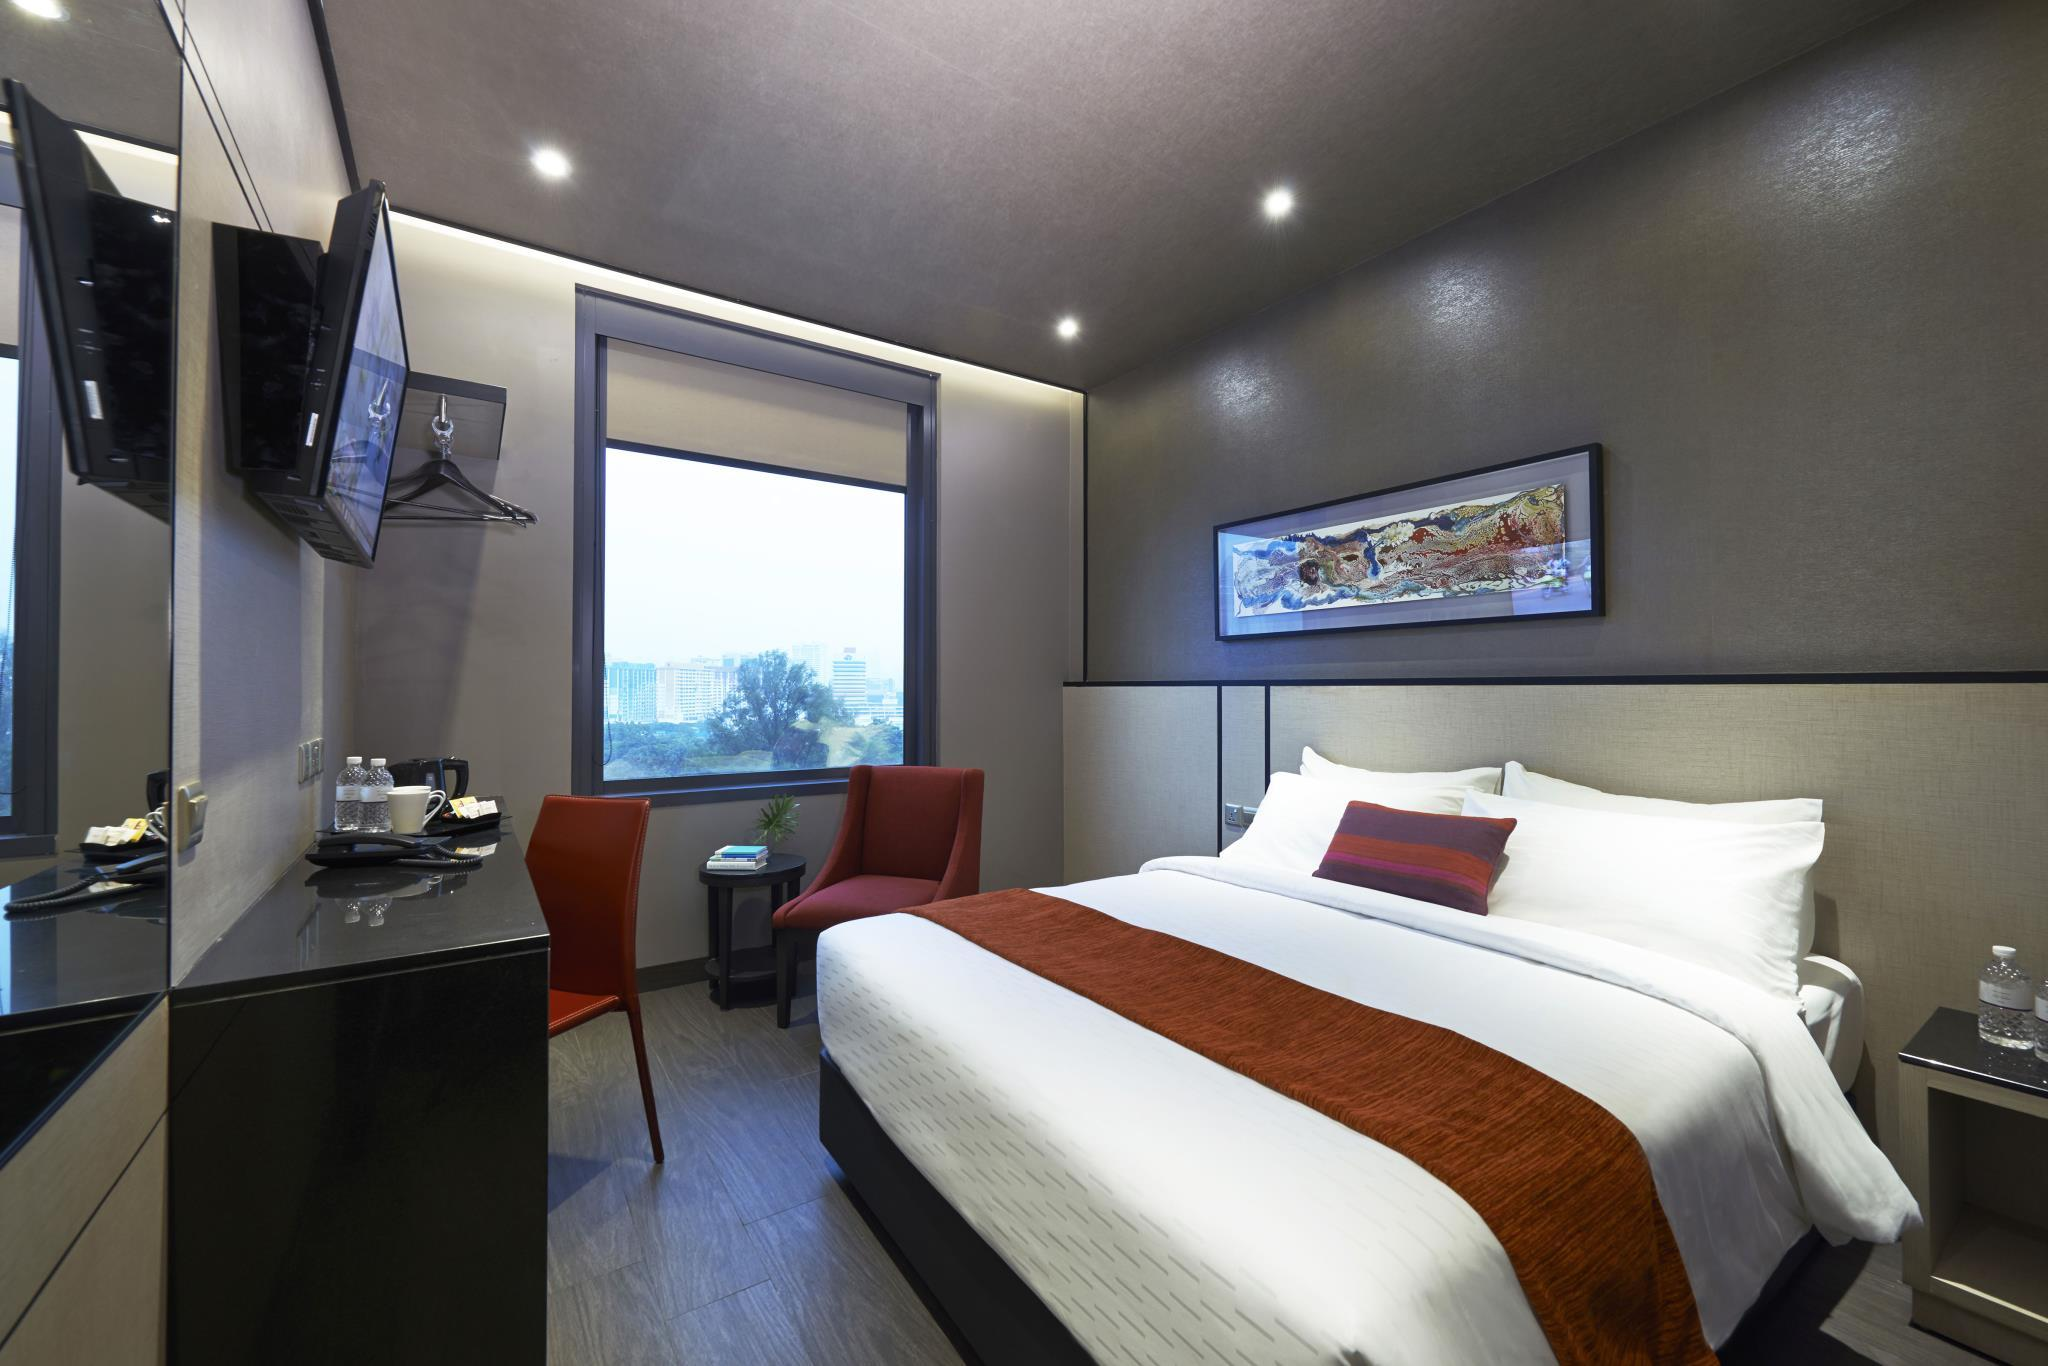 Premier Double Room with Balcony and Western Breakfast